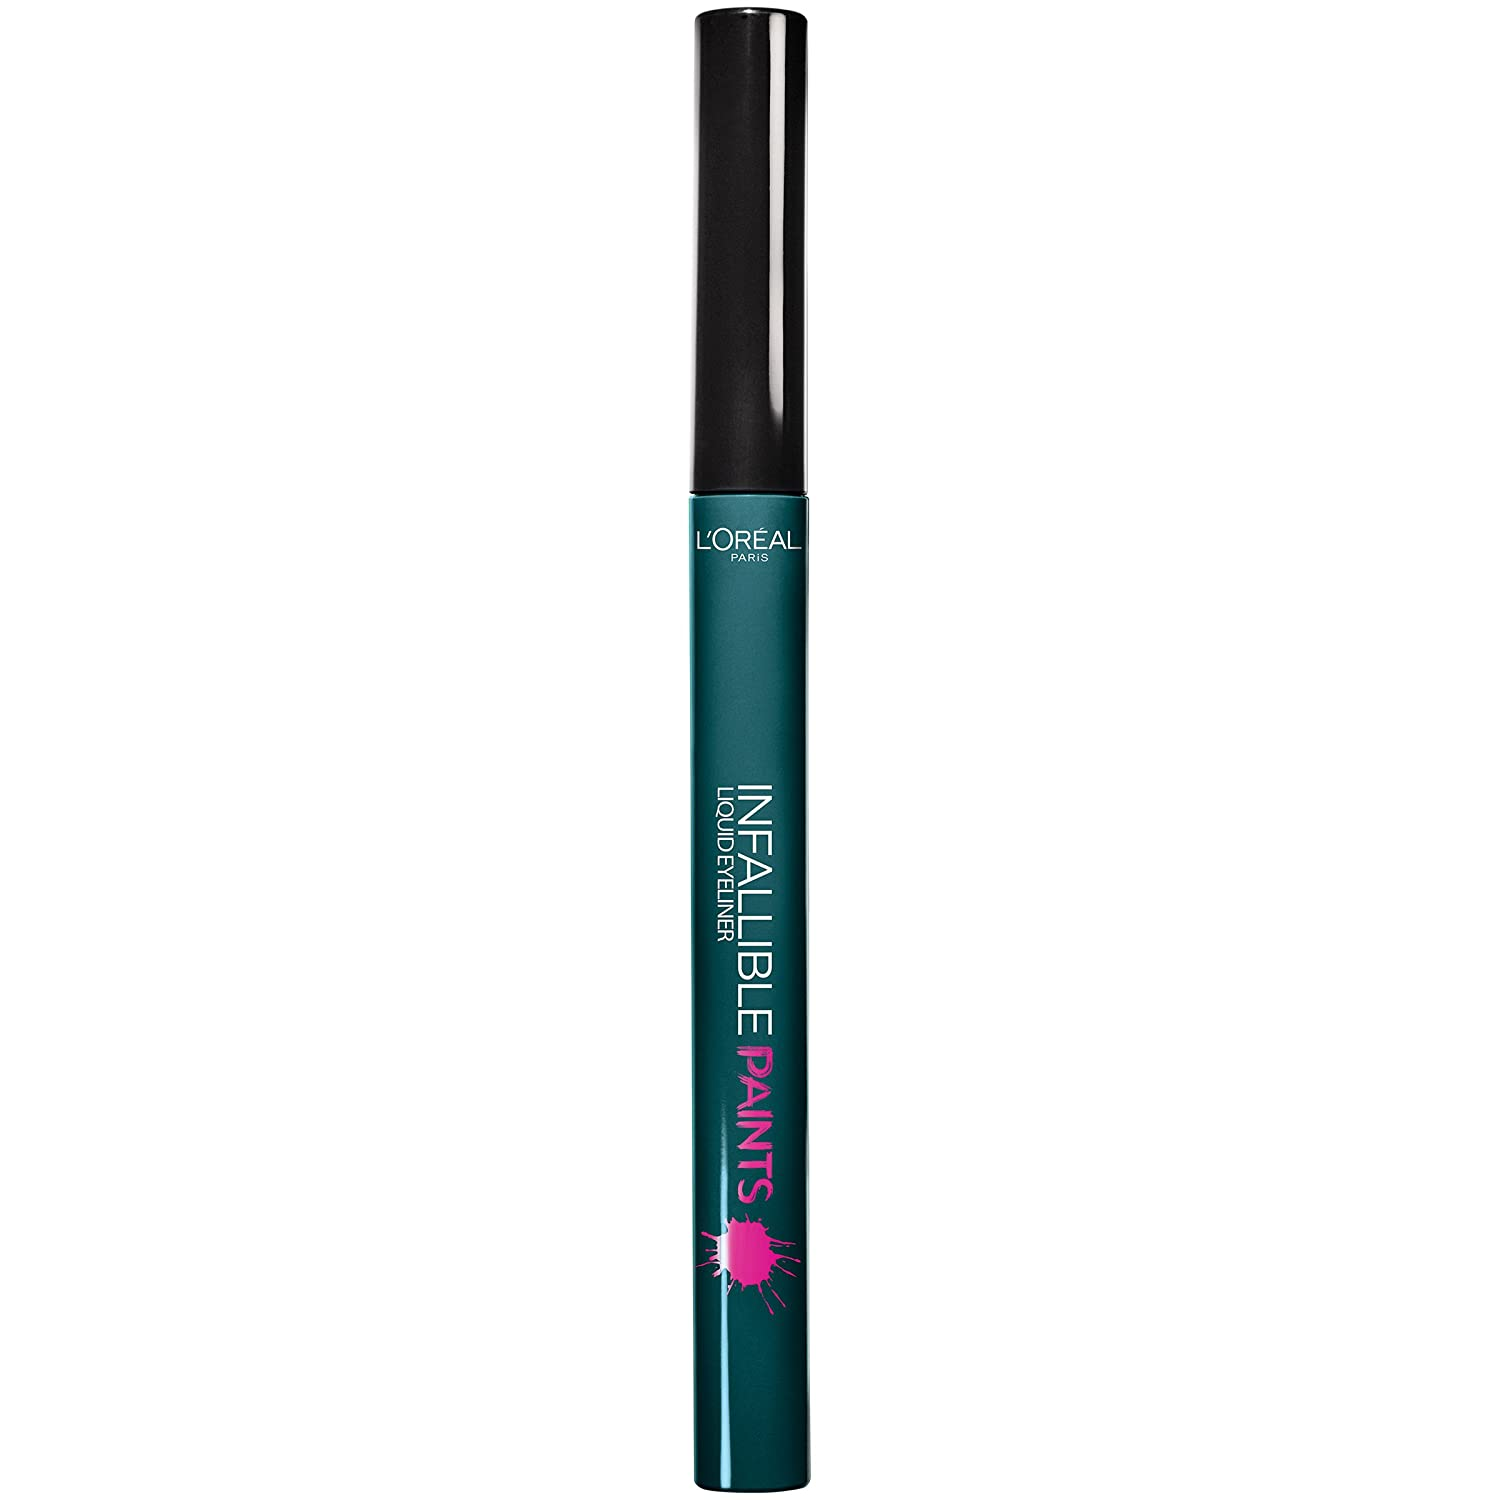 L'Oreal Paris Infallible paints eyeliner black party, 0.034 Fl Oz L' Oreal Paris